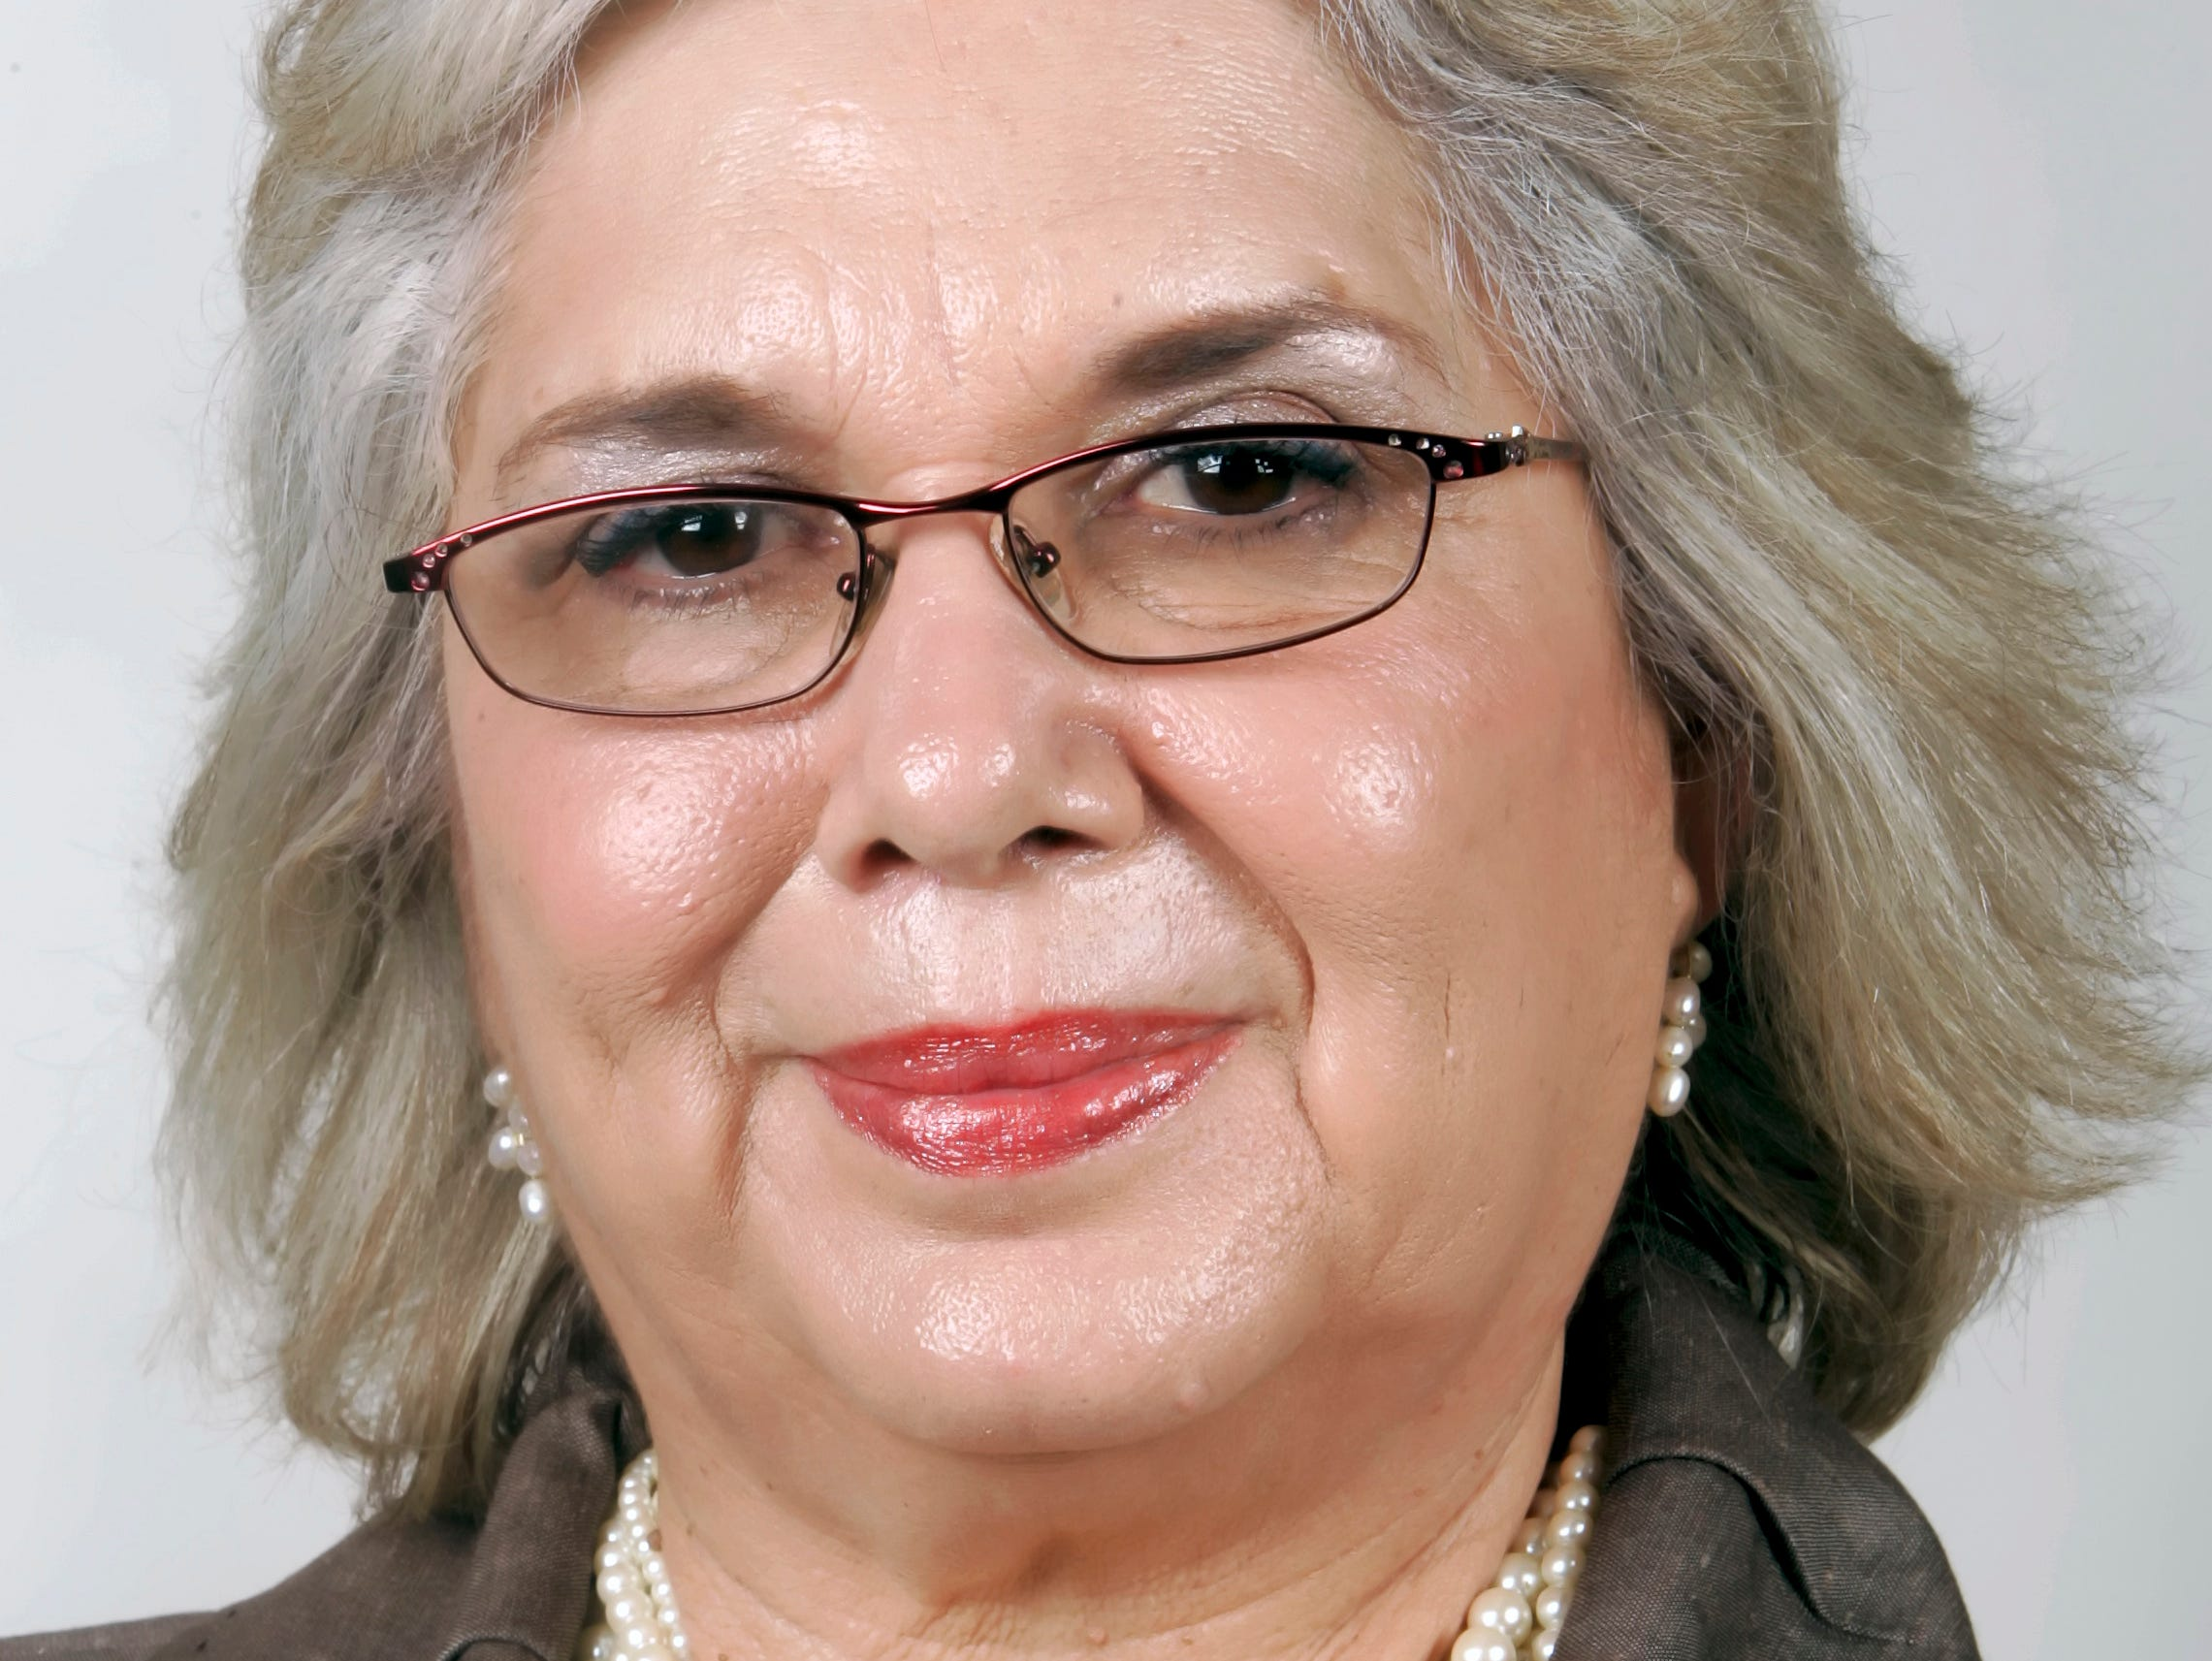 Judge Linda Reyna Yañez in 2010. She was the first woman to serve as a justice on the 13th Court of Appeals of Texas when appointed in 1993.